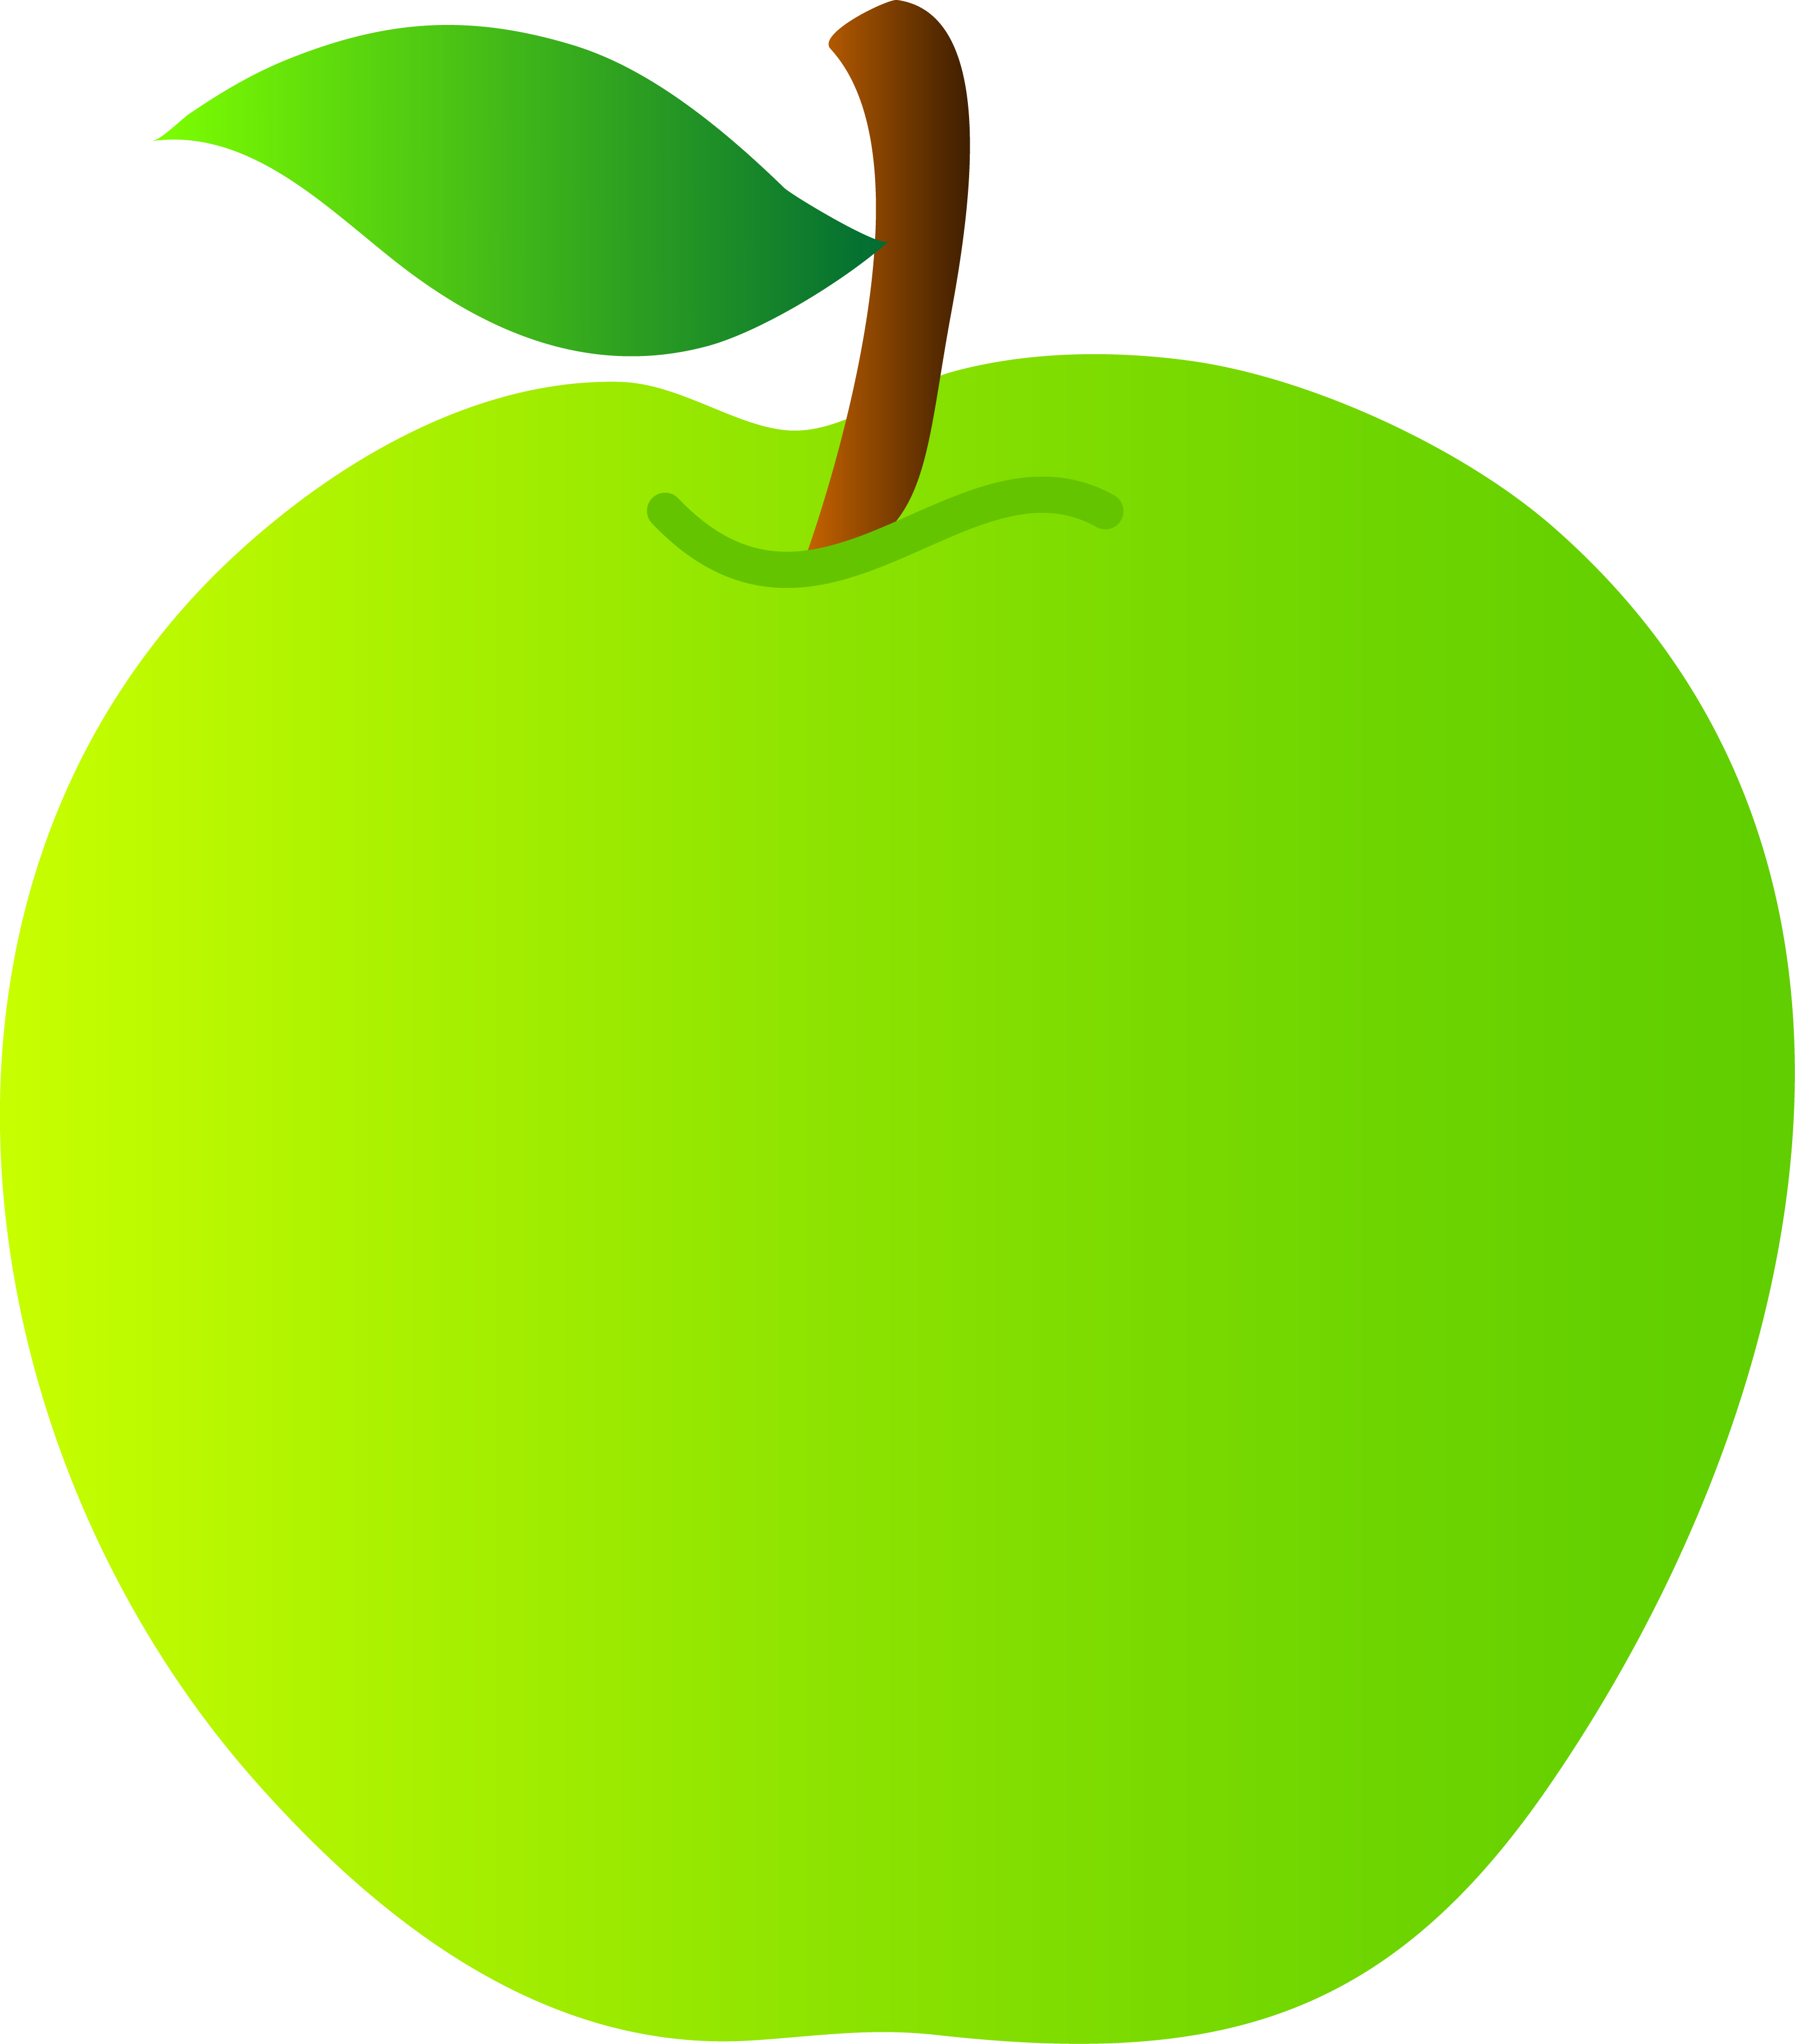 Green apple clipart png